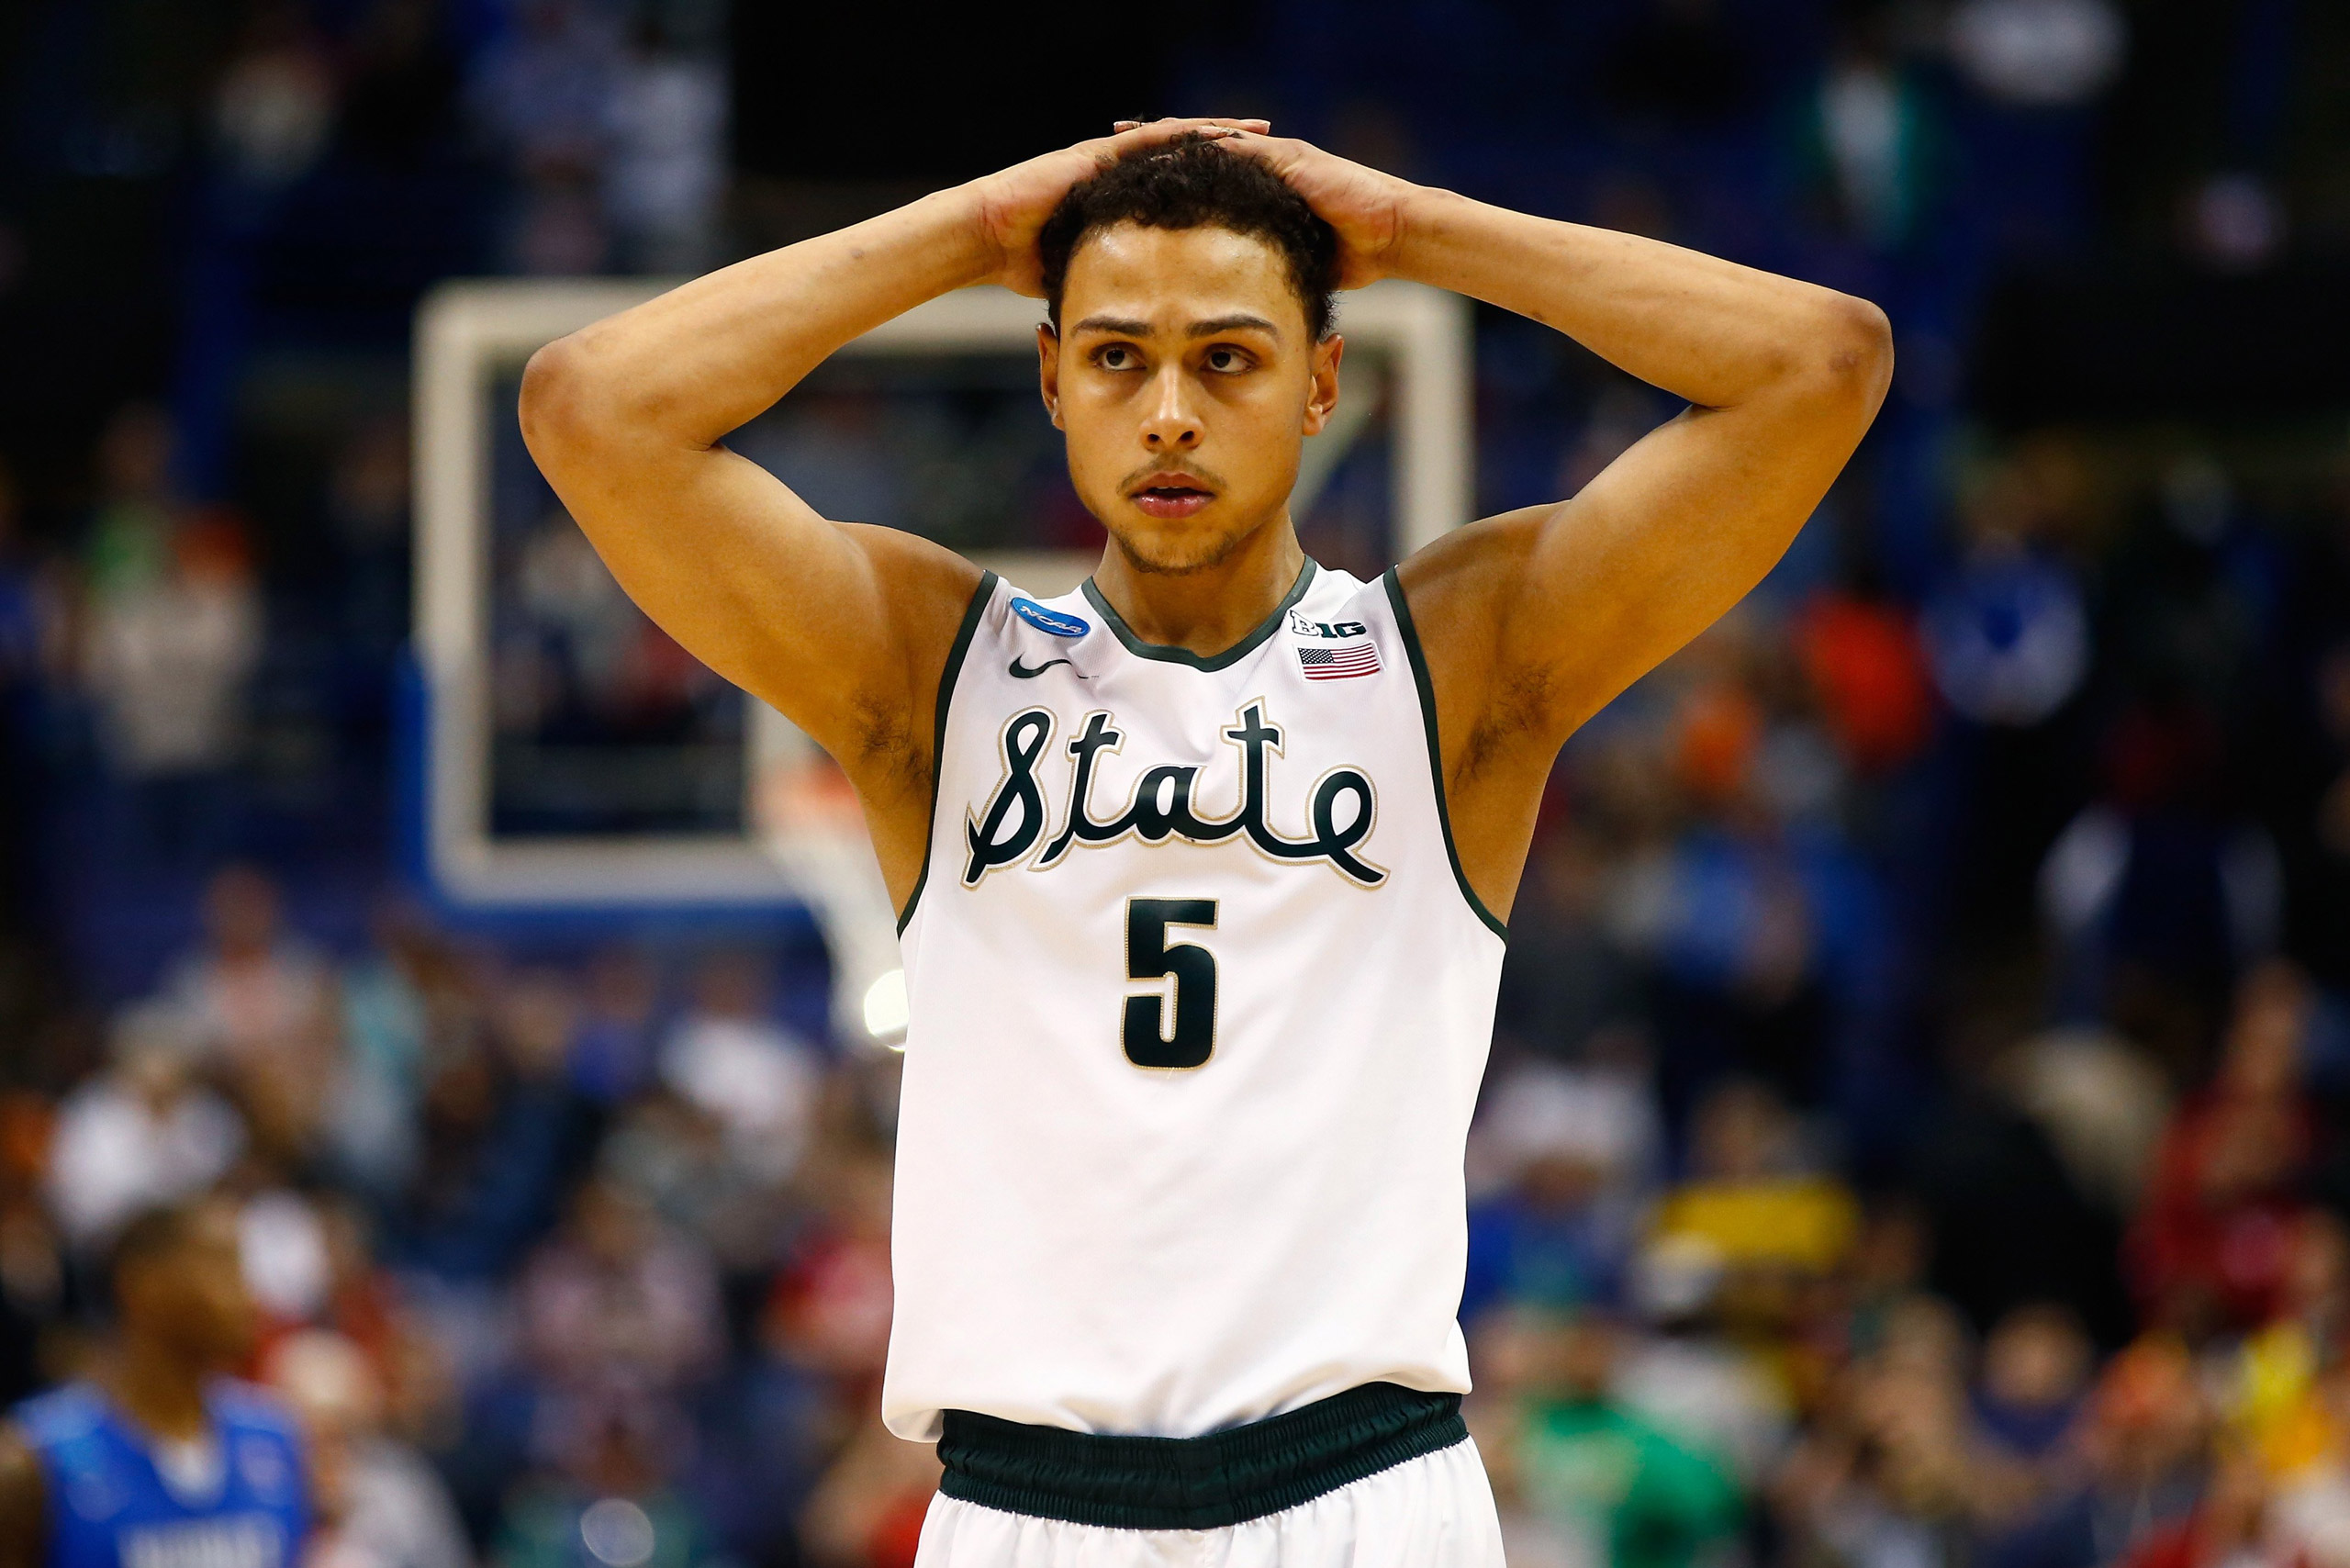 Bryn Forbes #5 of the Michigan State Spartans reacts late in the game against the Middle Tennessee Blue Raiders during the first round of the 2016 NCAA Men's Basketball Tournament at Scottrade Center in St Louis, Missouri, on Mar. 18, 2016.